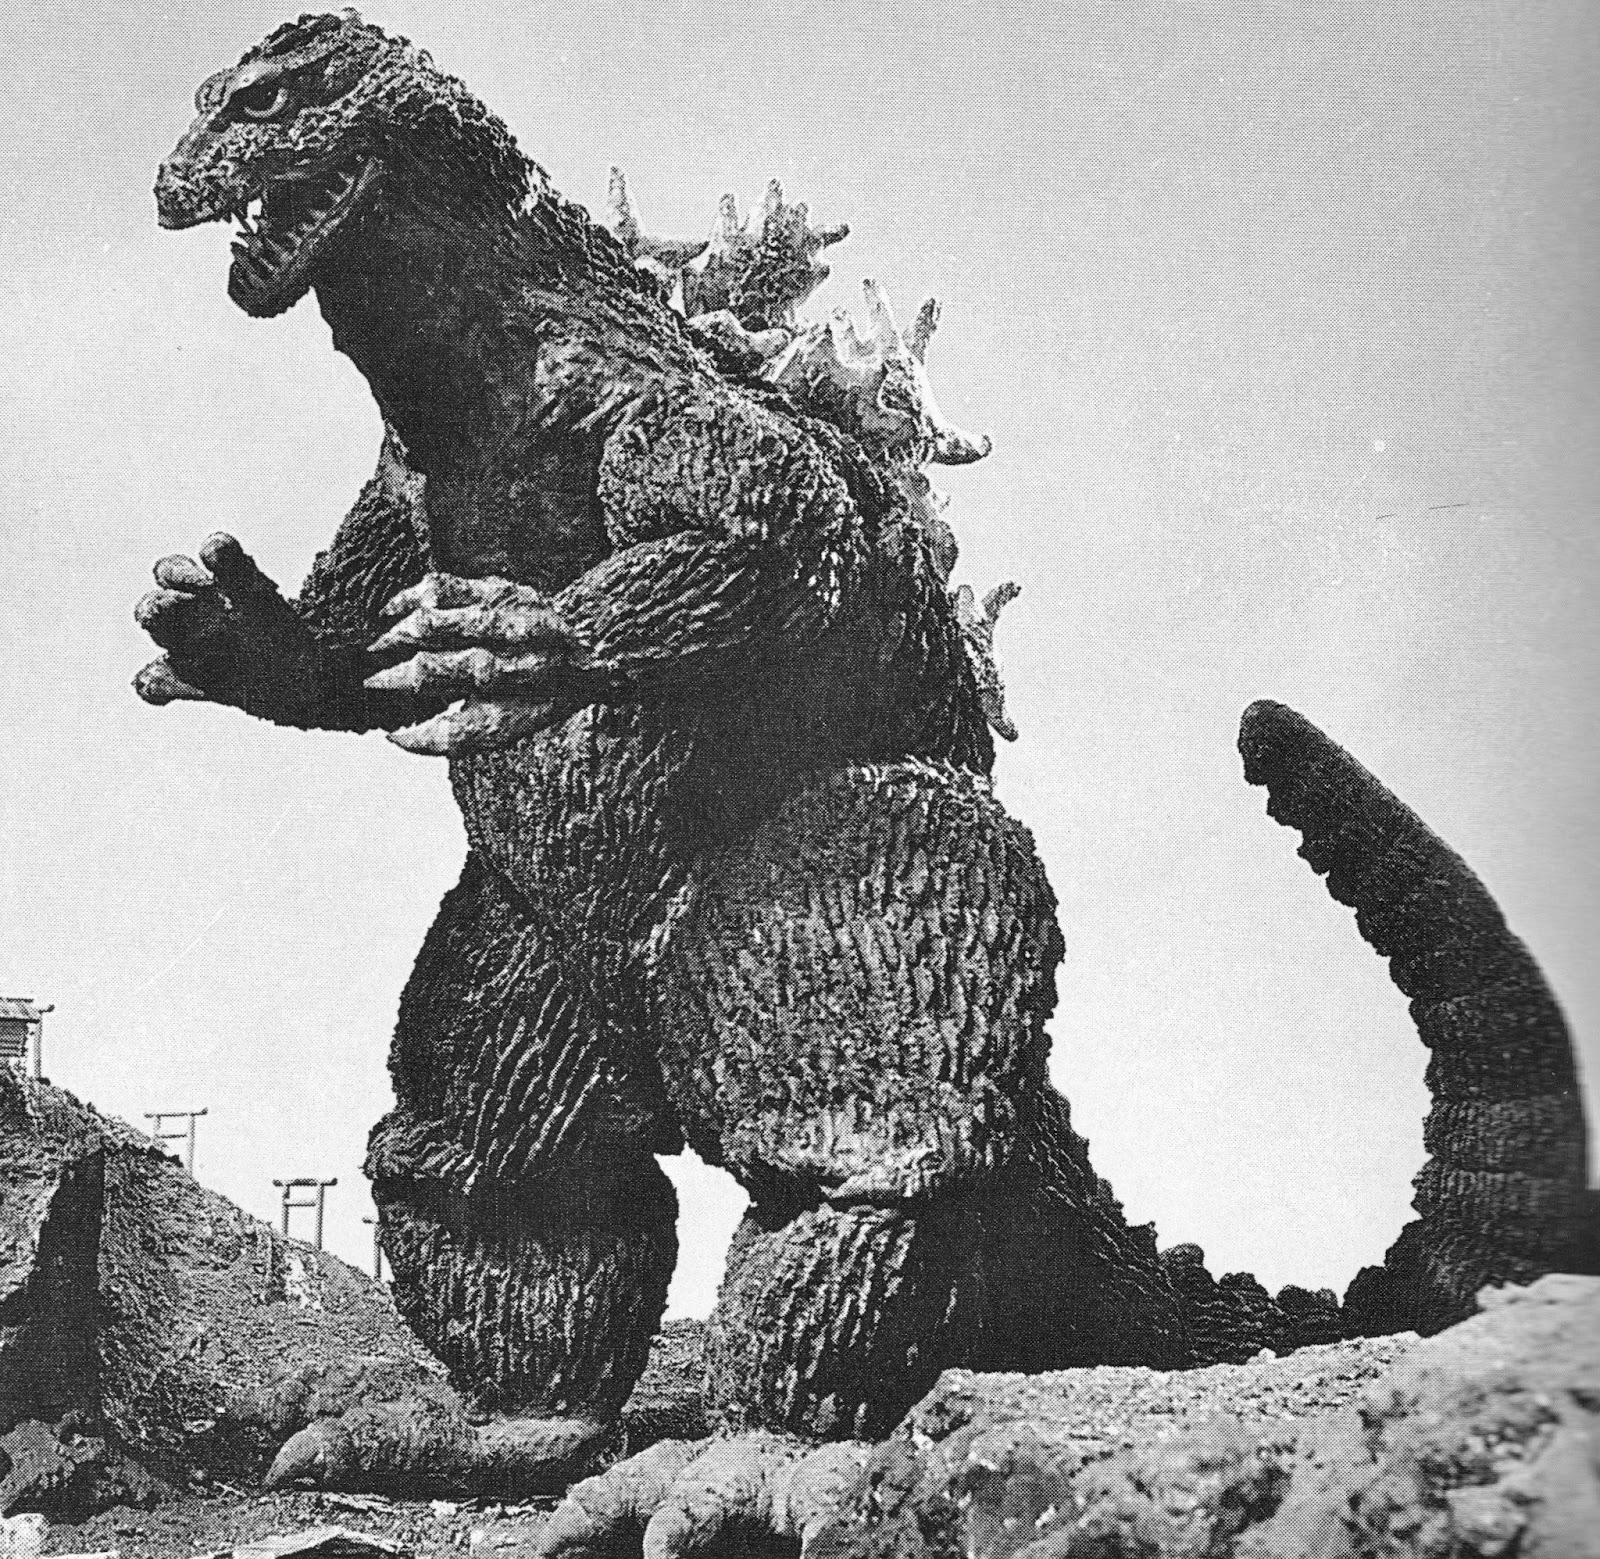 godzilla nuclear nightmare Which is the BEST Godzilla Design?